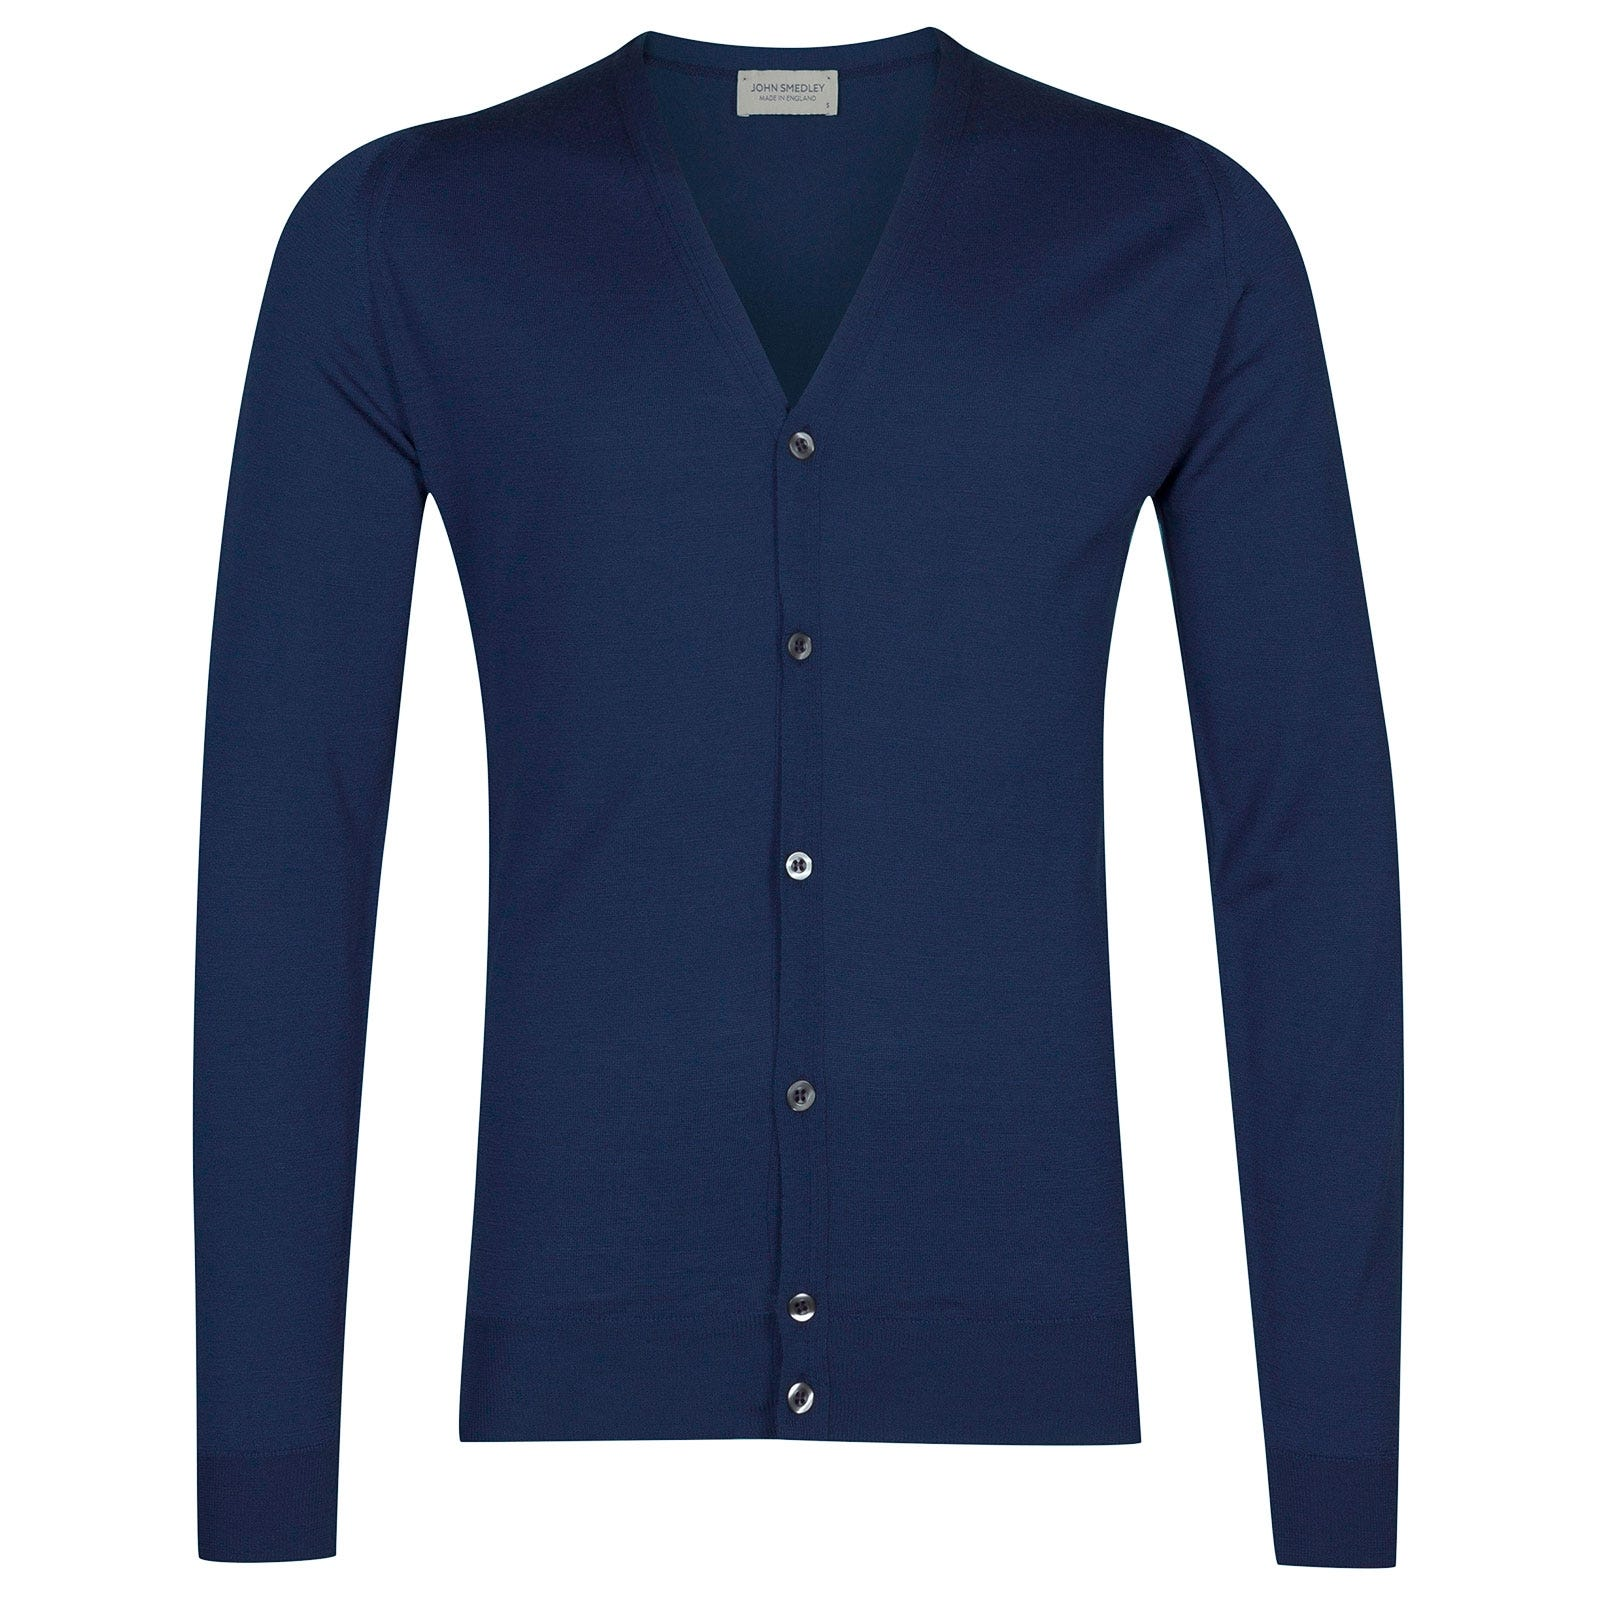 John Smedley Petworth Merino Wool Cardigan in Magnetic Cobalt-S